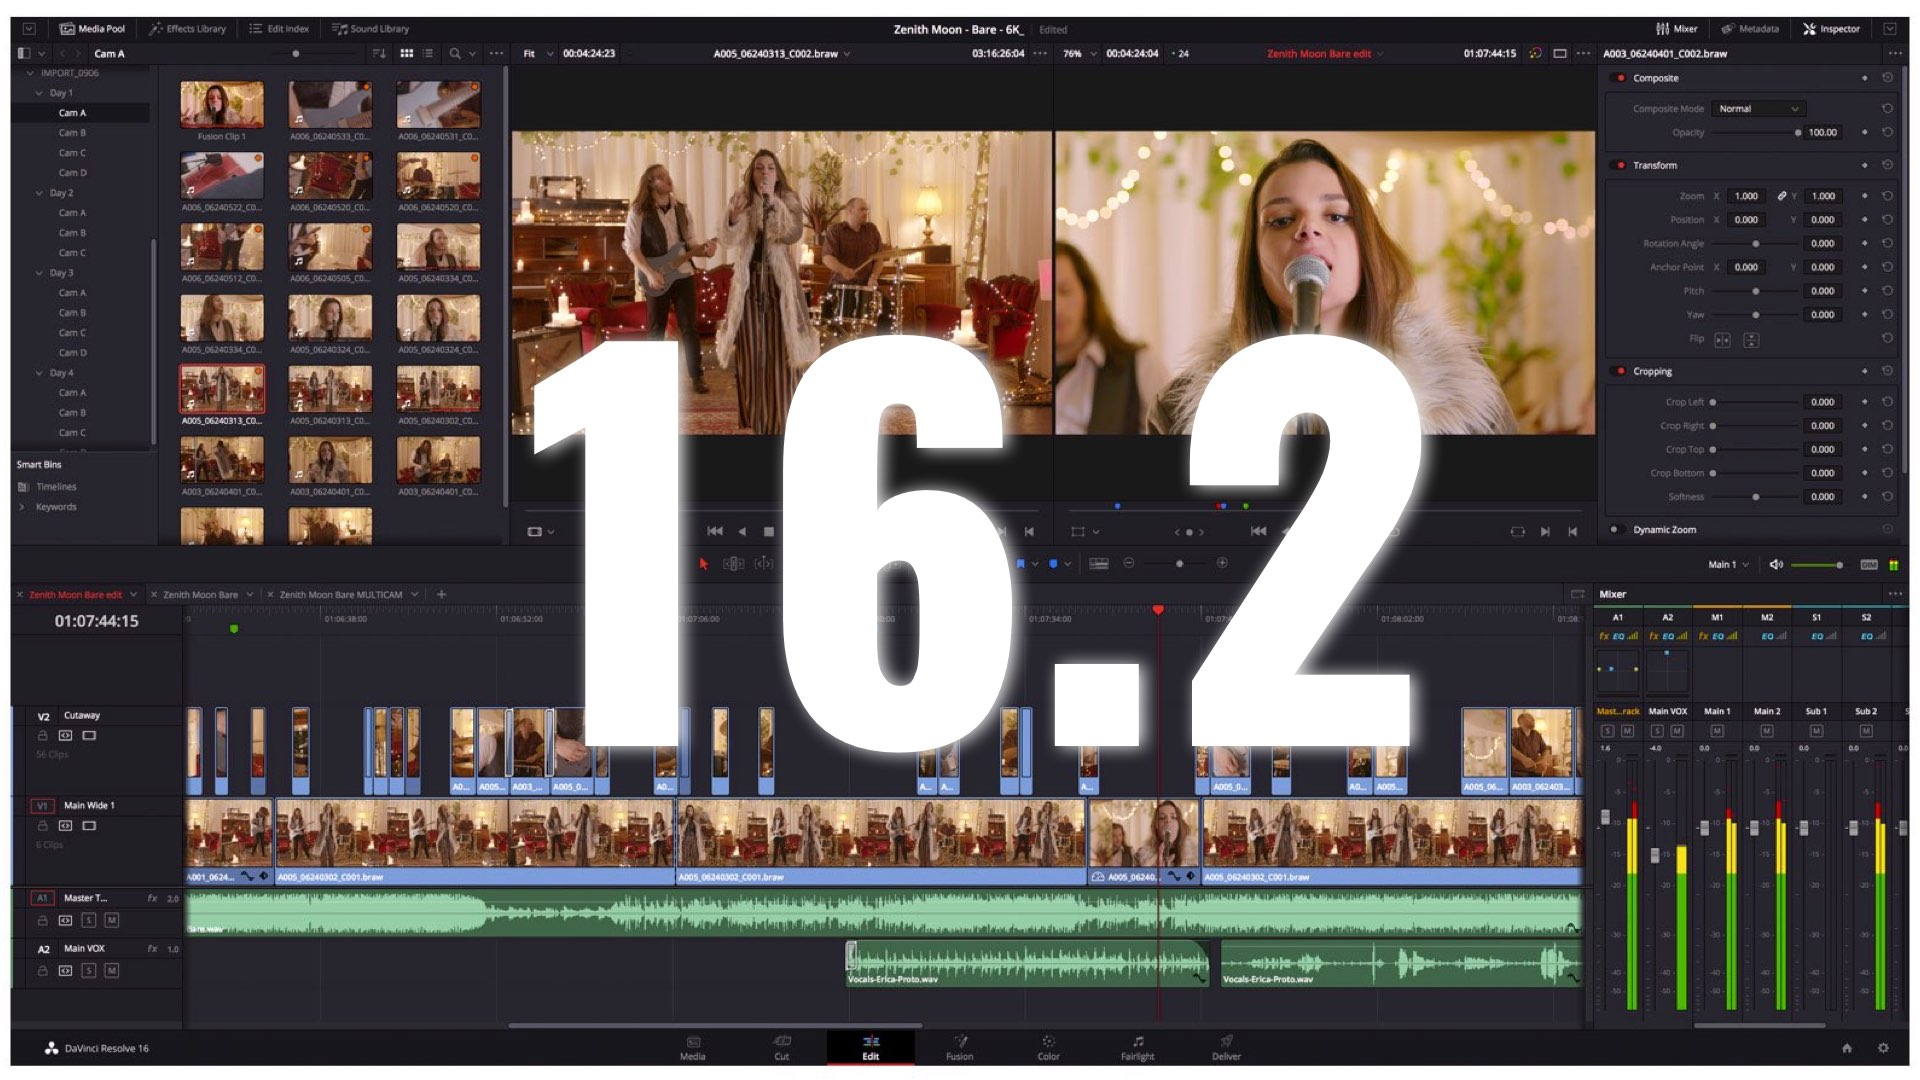 Blackmagic News Davinci Resolve 16 2 Announced With Boosted Audio Capabilities Y M Cinema News Insights On Digital Cinema